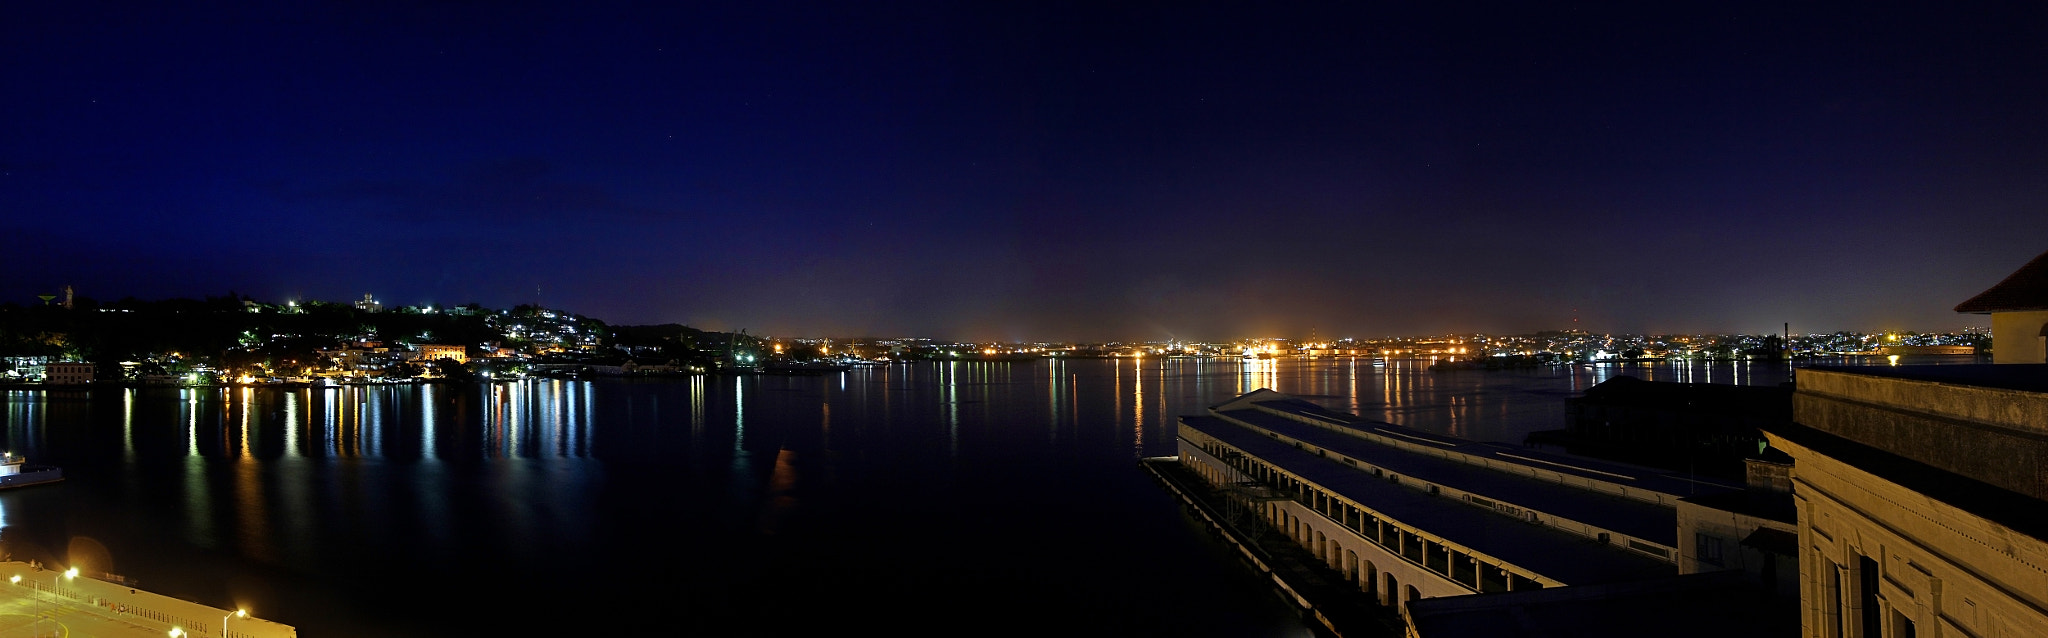 Photograph Bay of Havana by Chris Erland on 500px